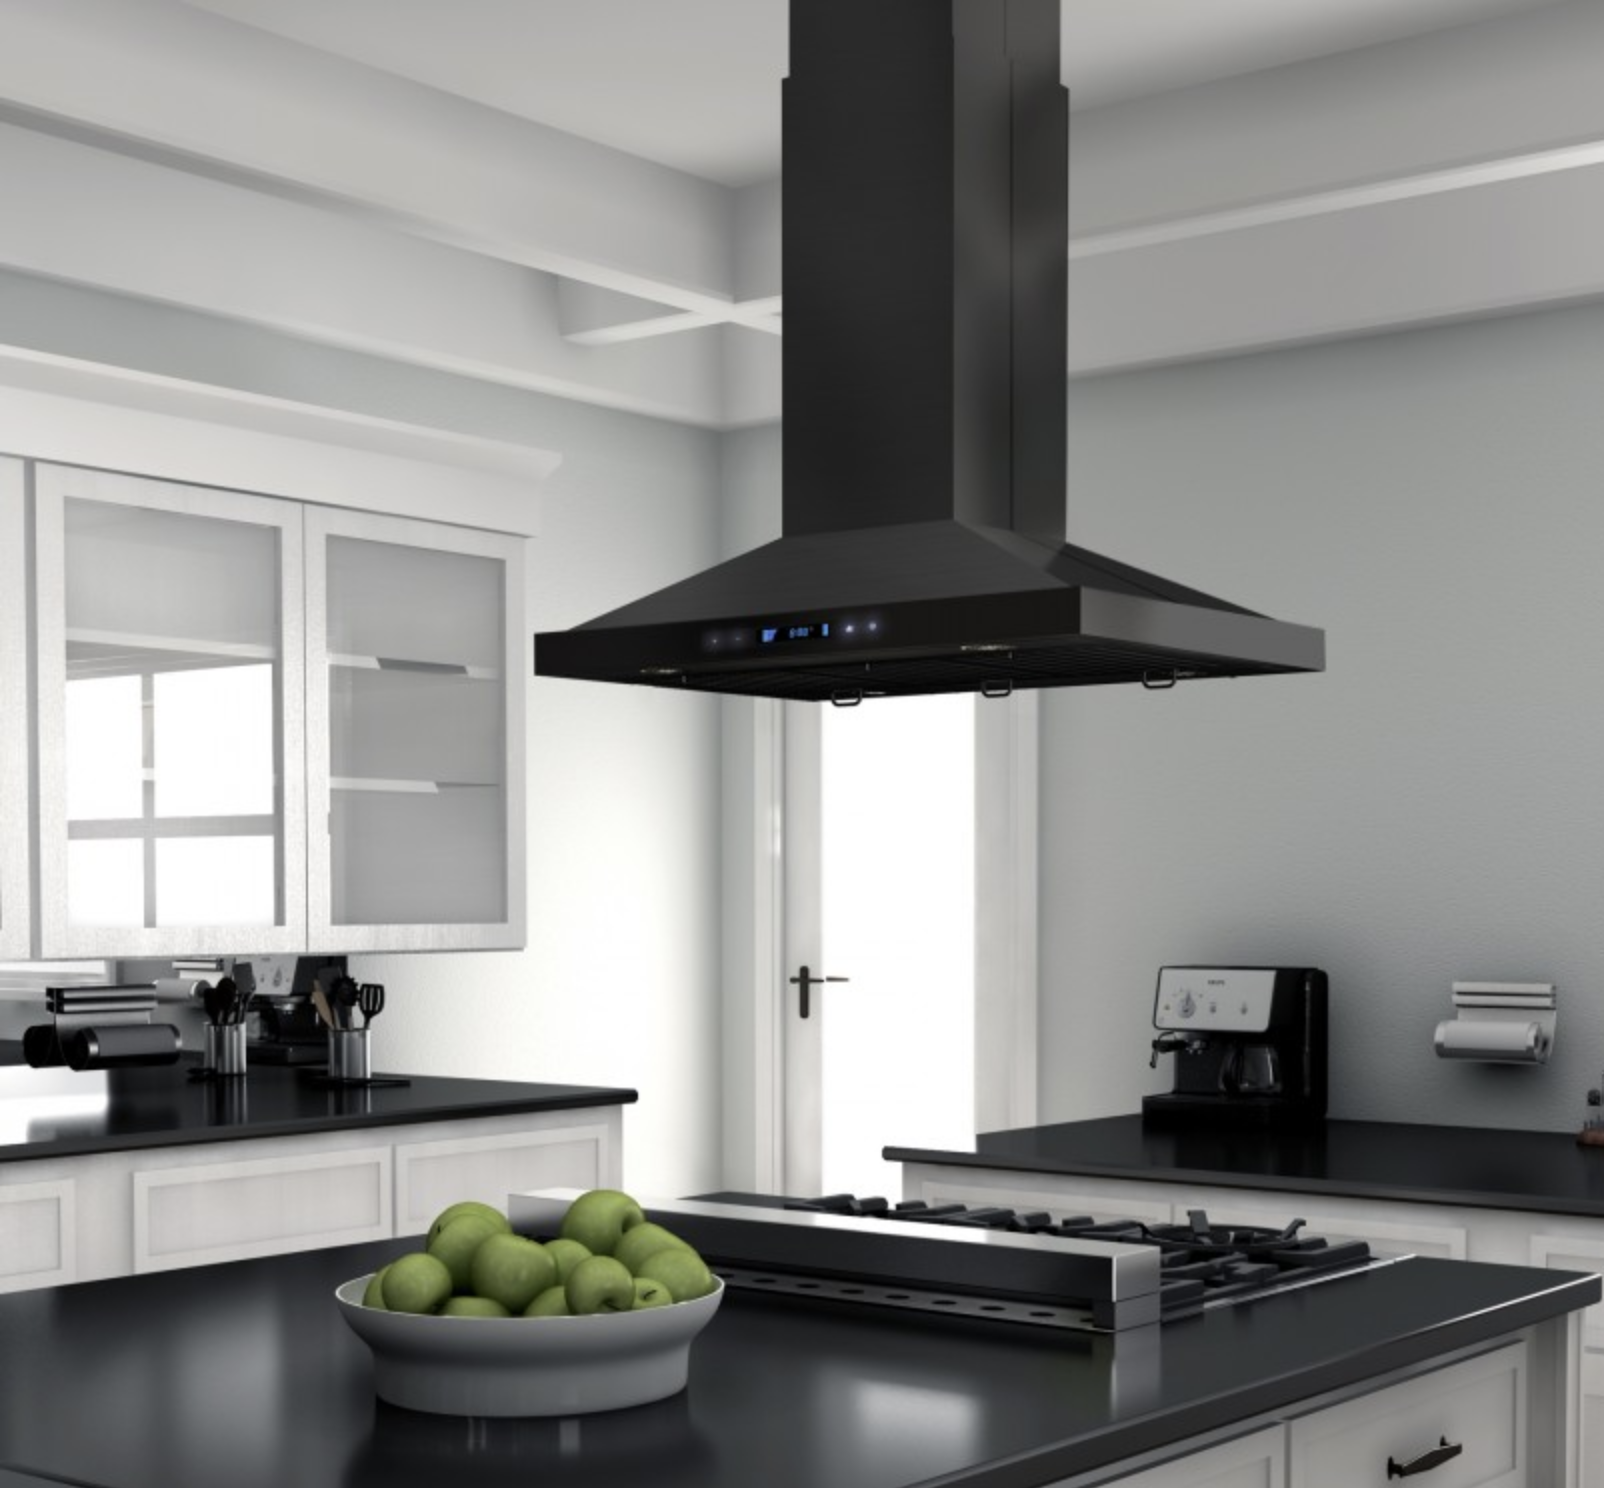 Zline 30 In 760 Cfm Island Mount Range Hood In Black Stainless Steel Range Hood Black Stainless Steel Sleek Kitchen